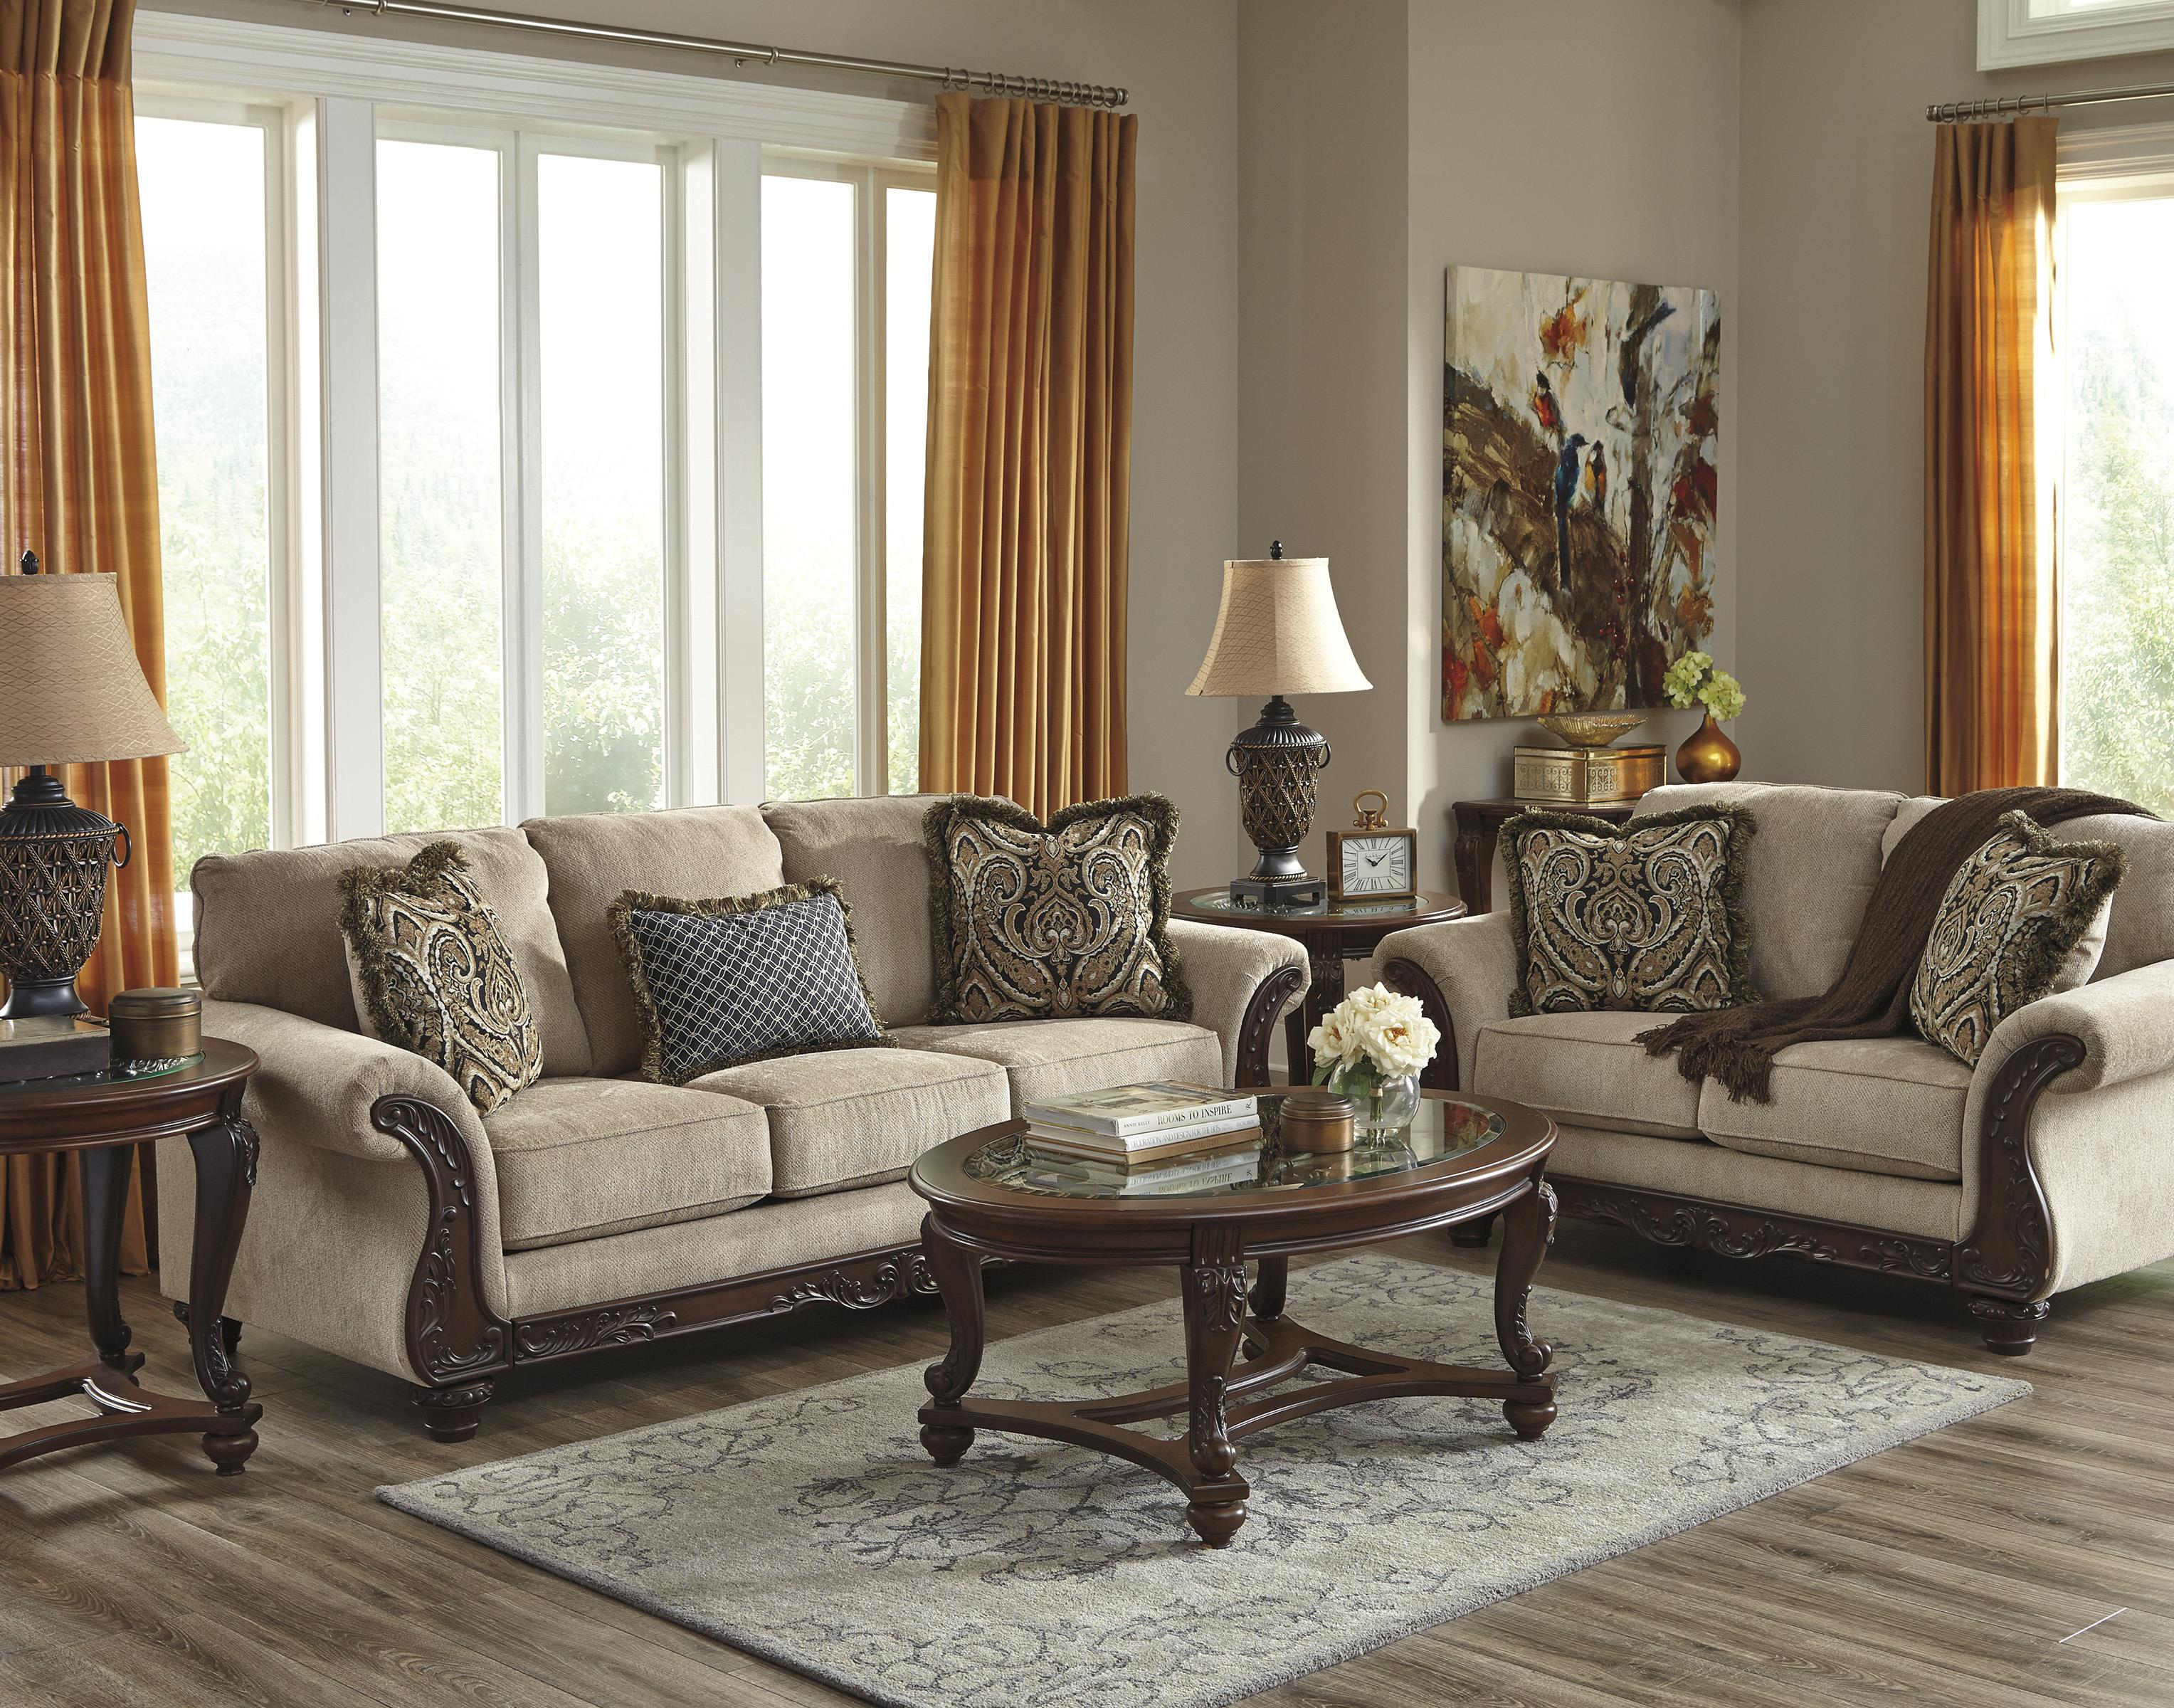 Benchcraft Laytonsville Stationary Living Room Group - Item Number: 72002 Living Room Group 1